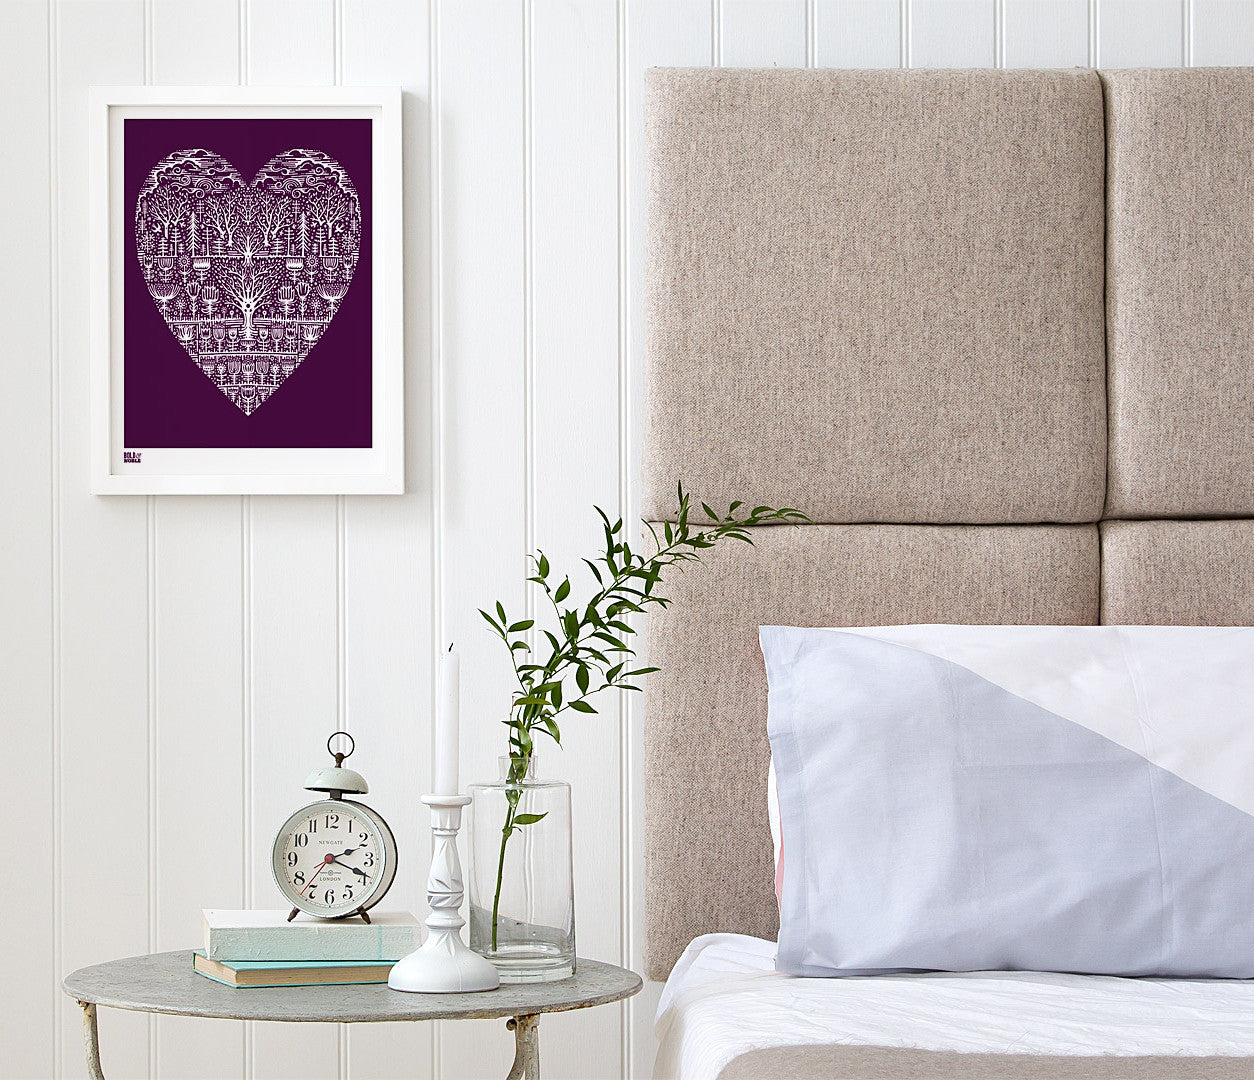 Wild Wood Art Print, Modern Print Designs for the Home